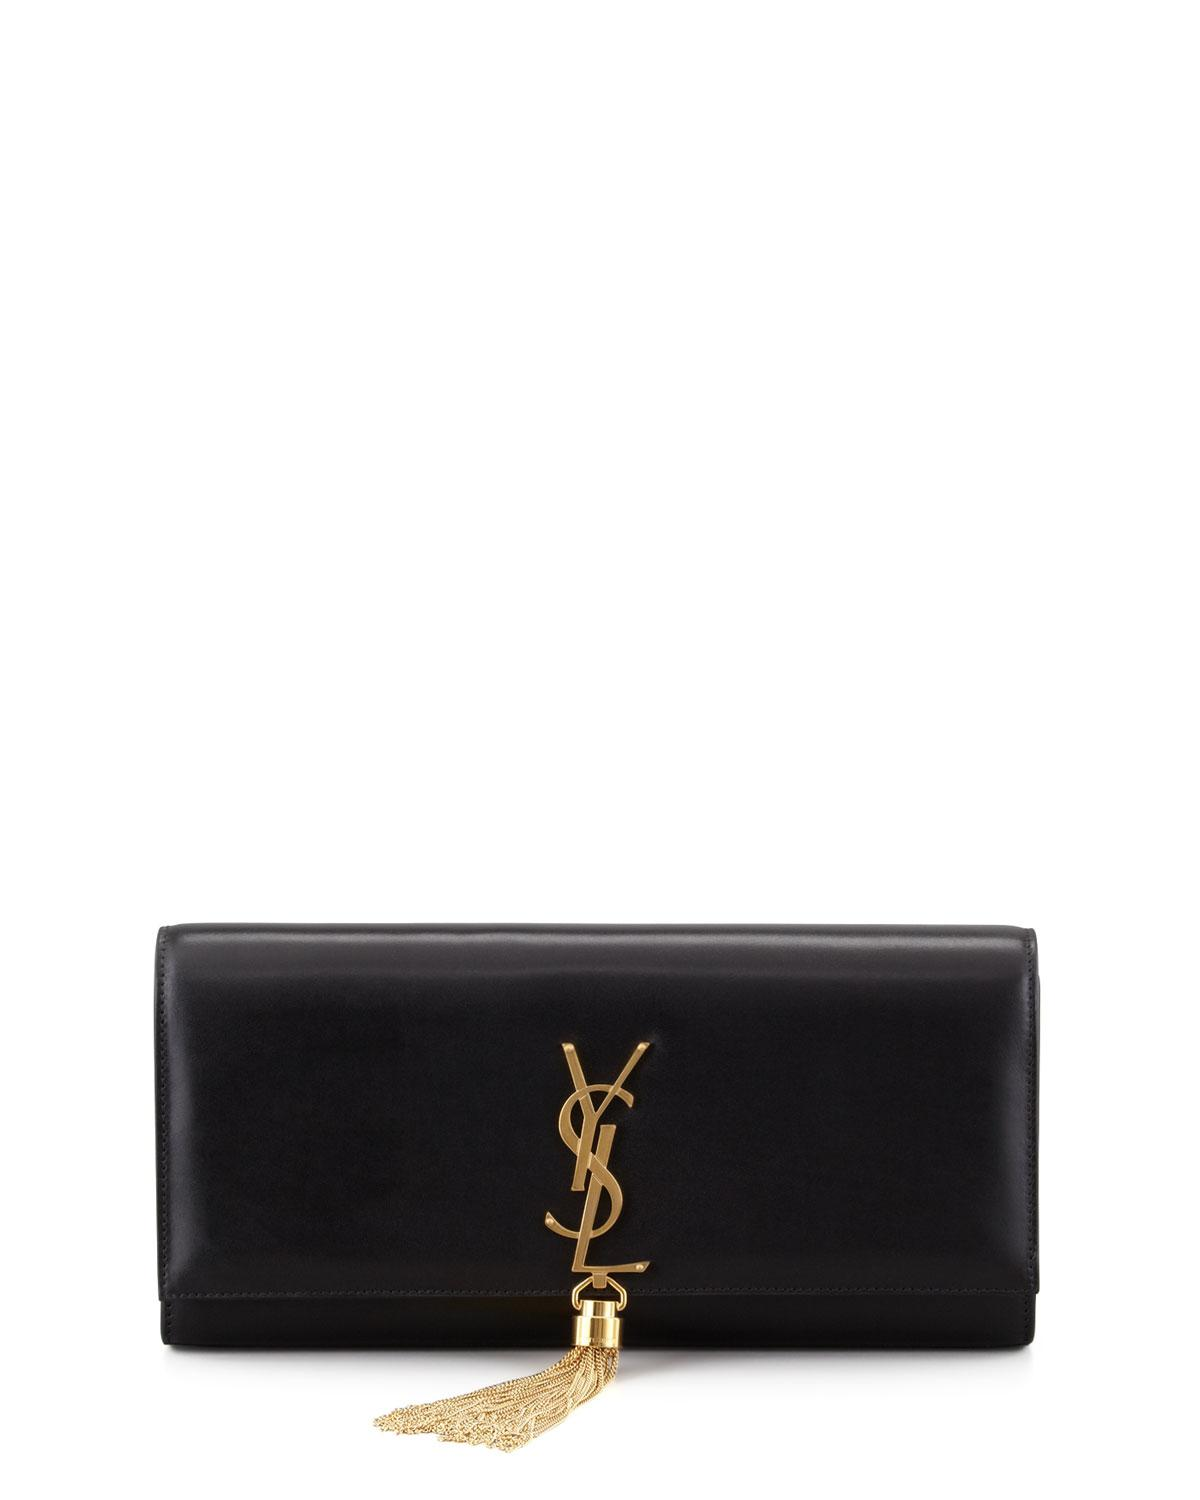 caa82da84c Lyst - Saint Laurent Cassandre Tassel Clutch Bag in Black